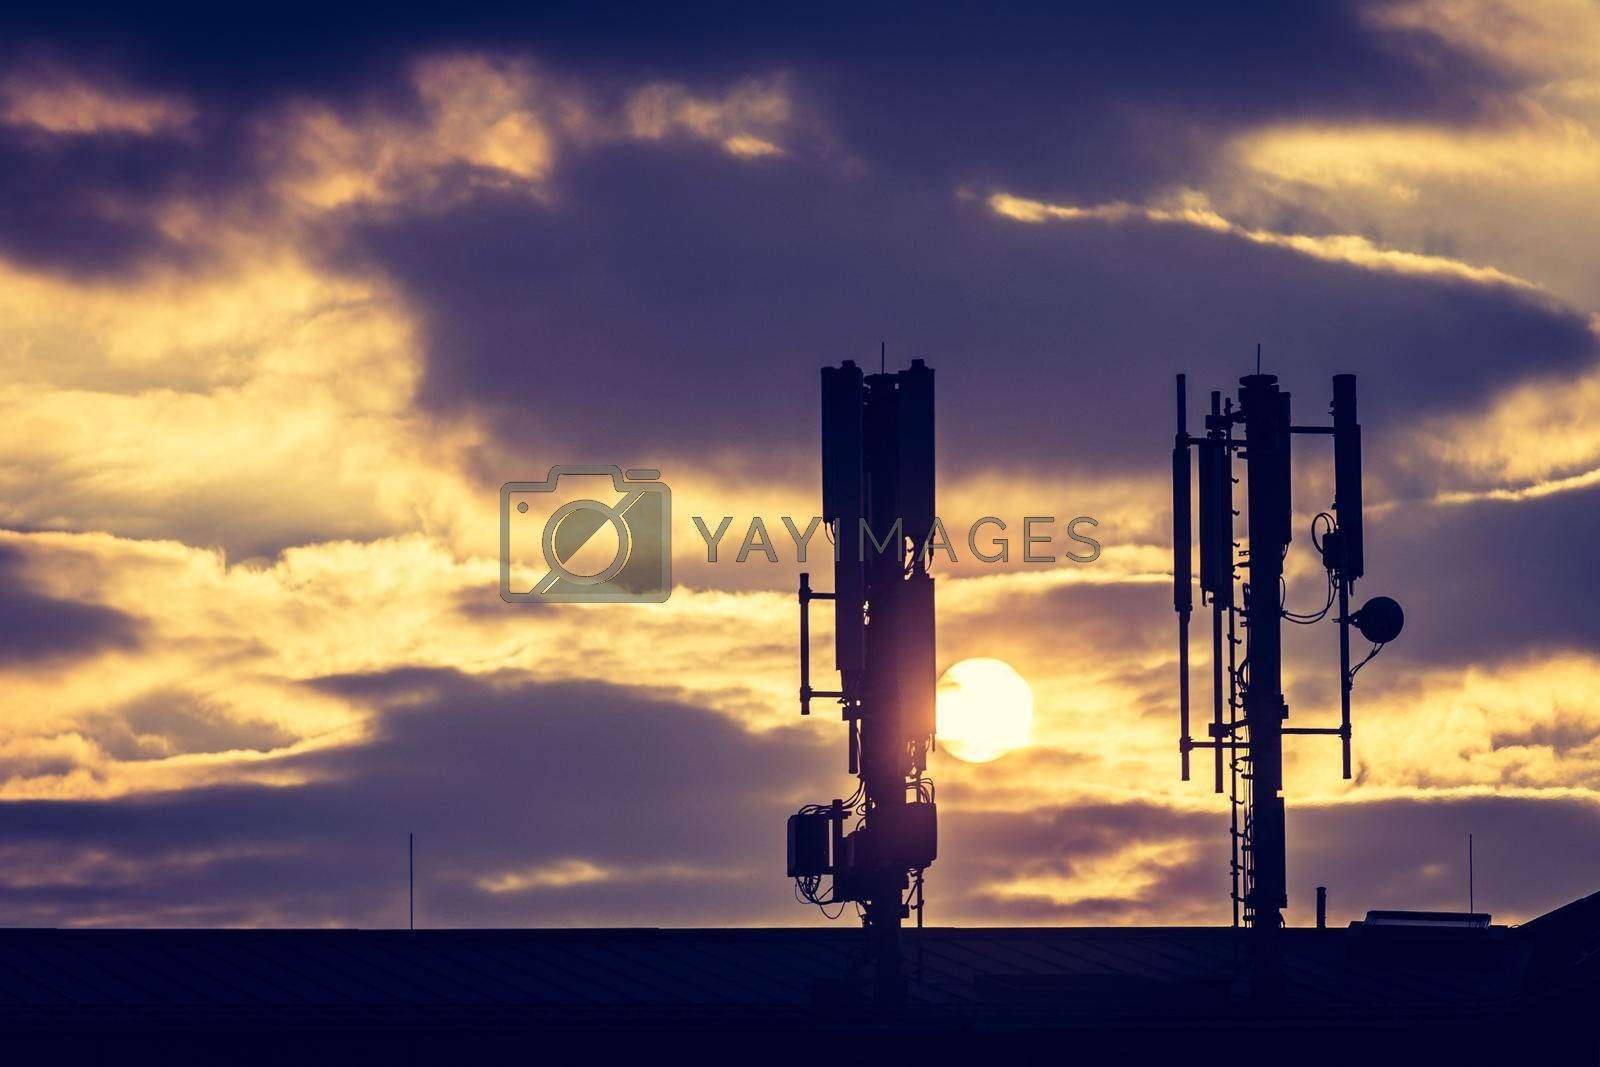 Silhouette of communication or cell tower on the rooftop of a building, evening sunshine